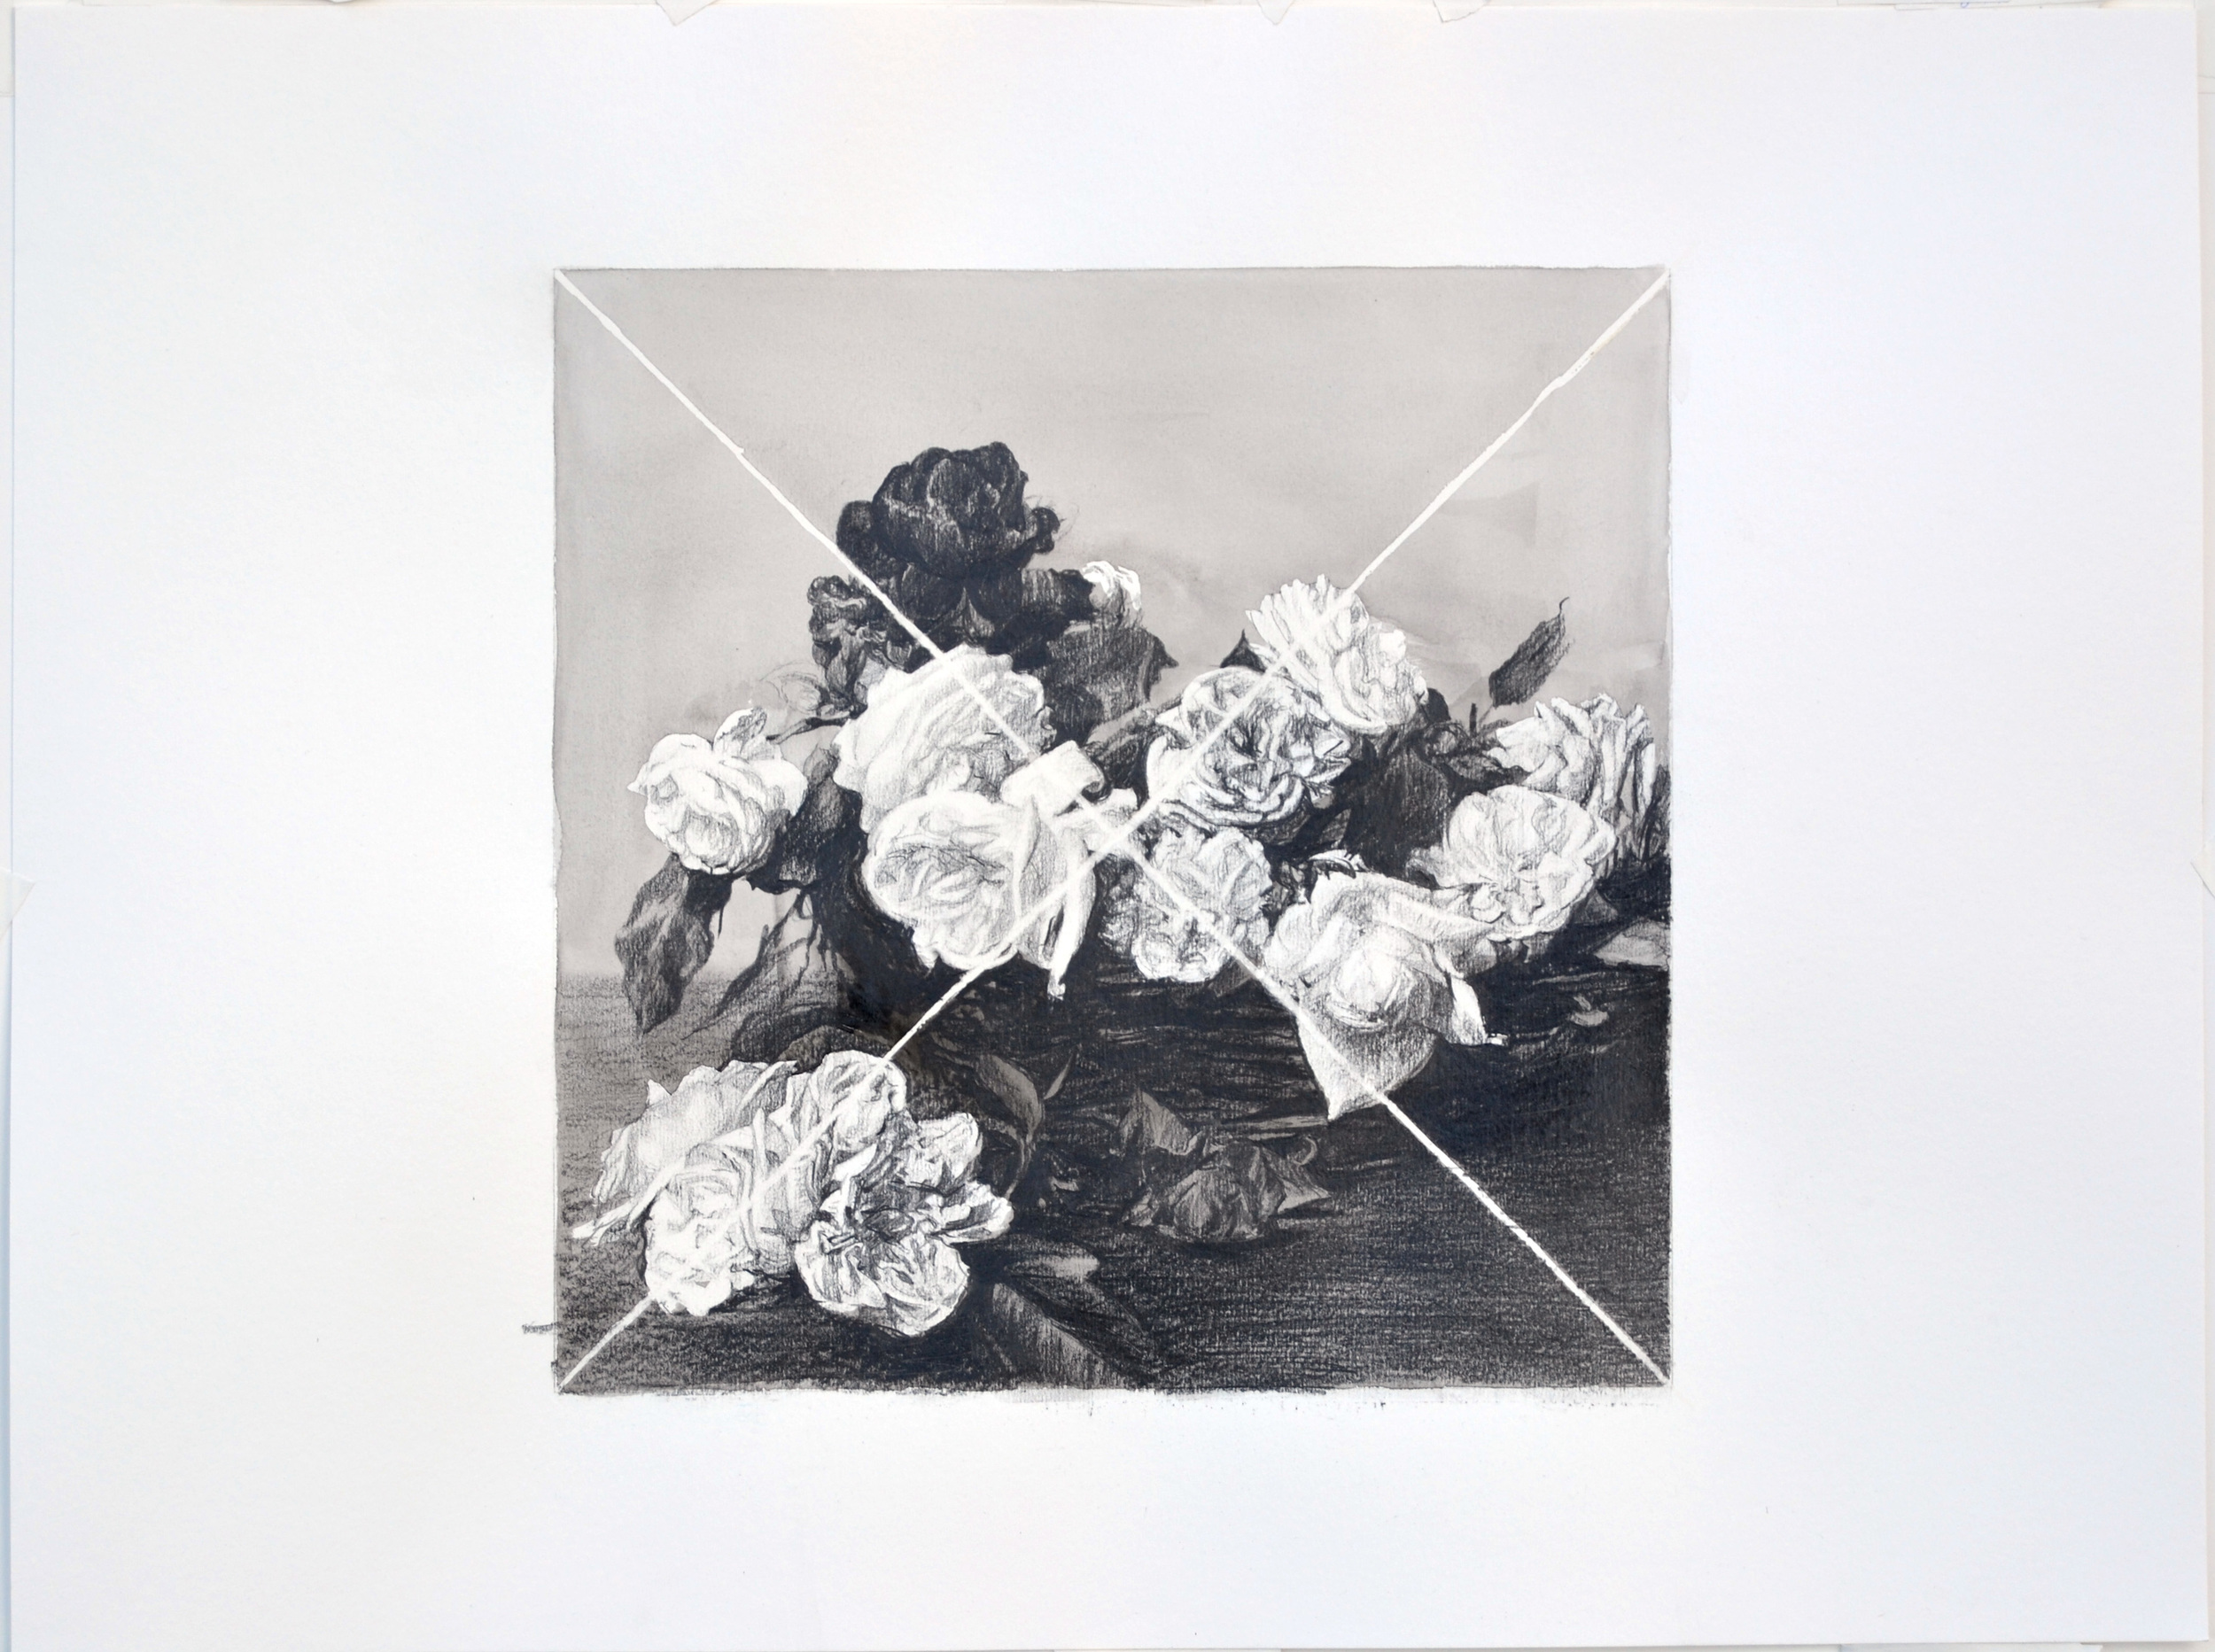 Power Corruption and Lies #27